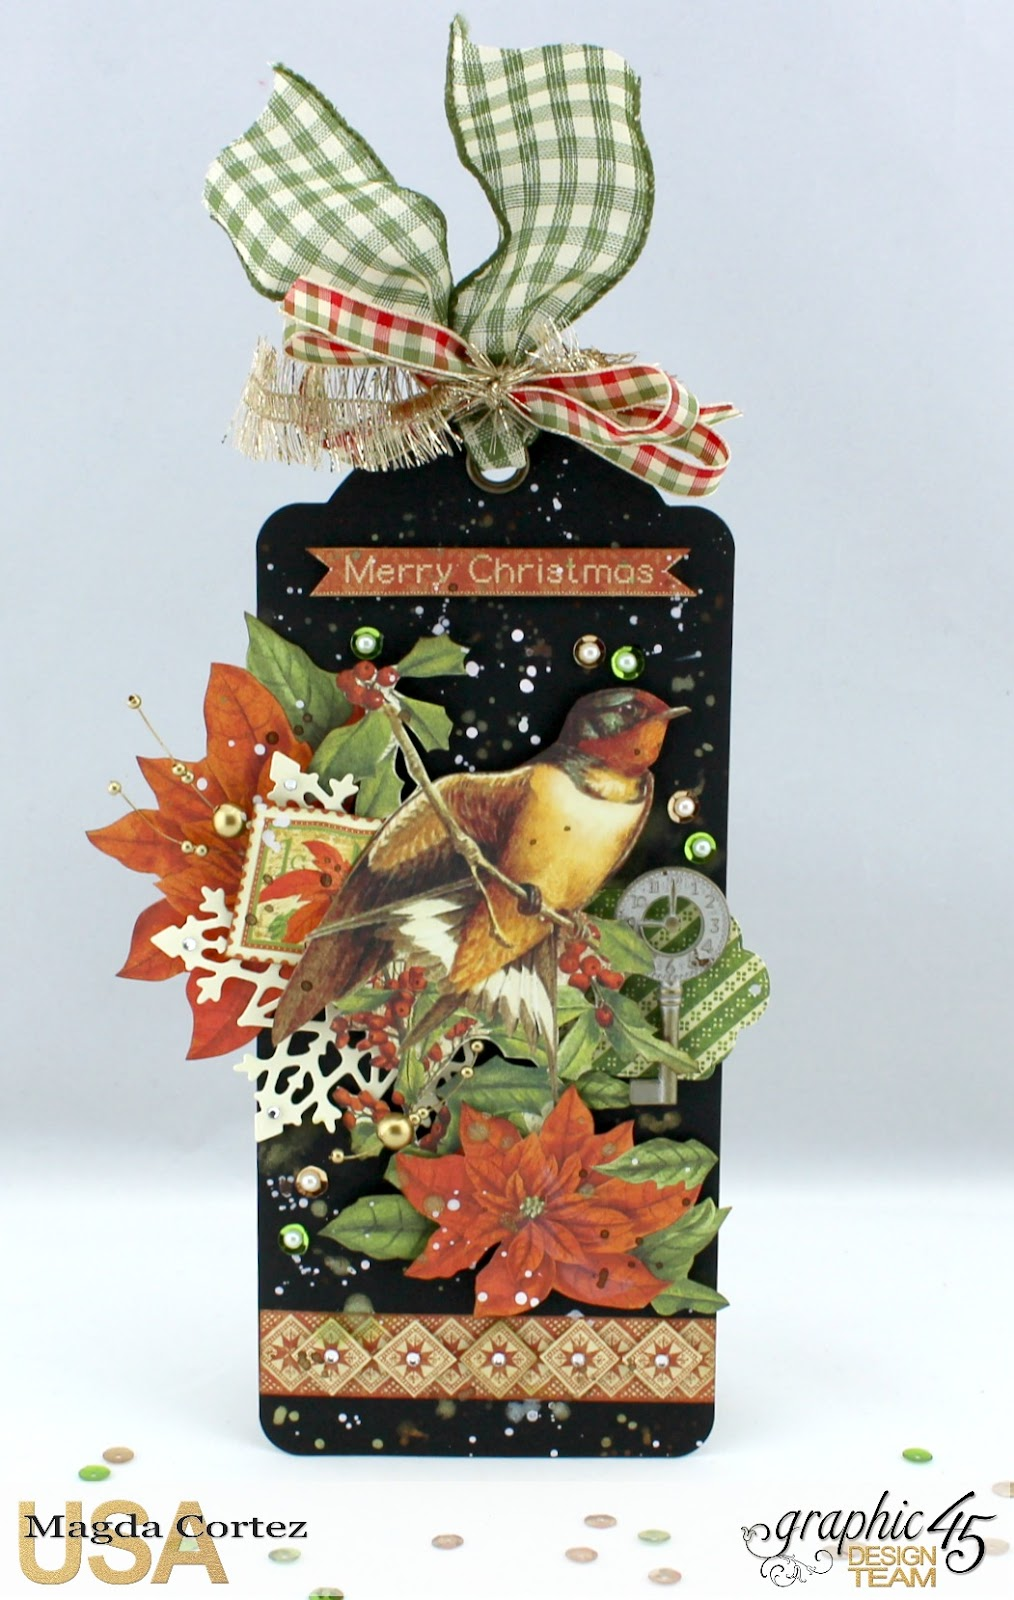 Joy Set of Tags, Winter Wonderland, By Magda Cortez, Product by Graphic 45, Photo 04 of 09.jpg